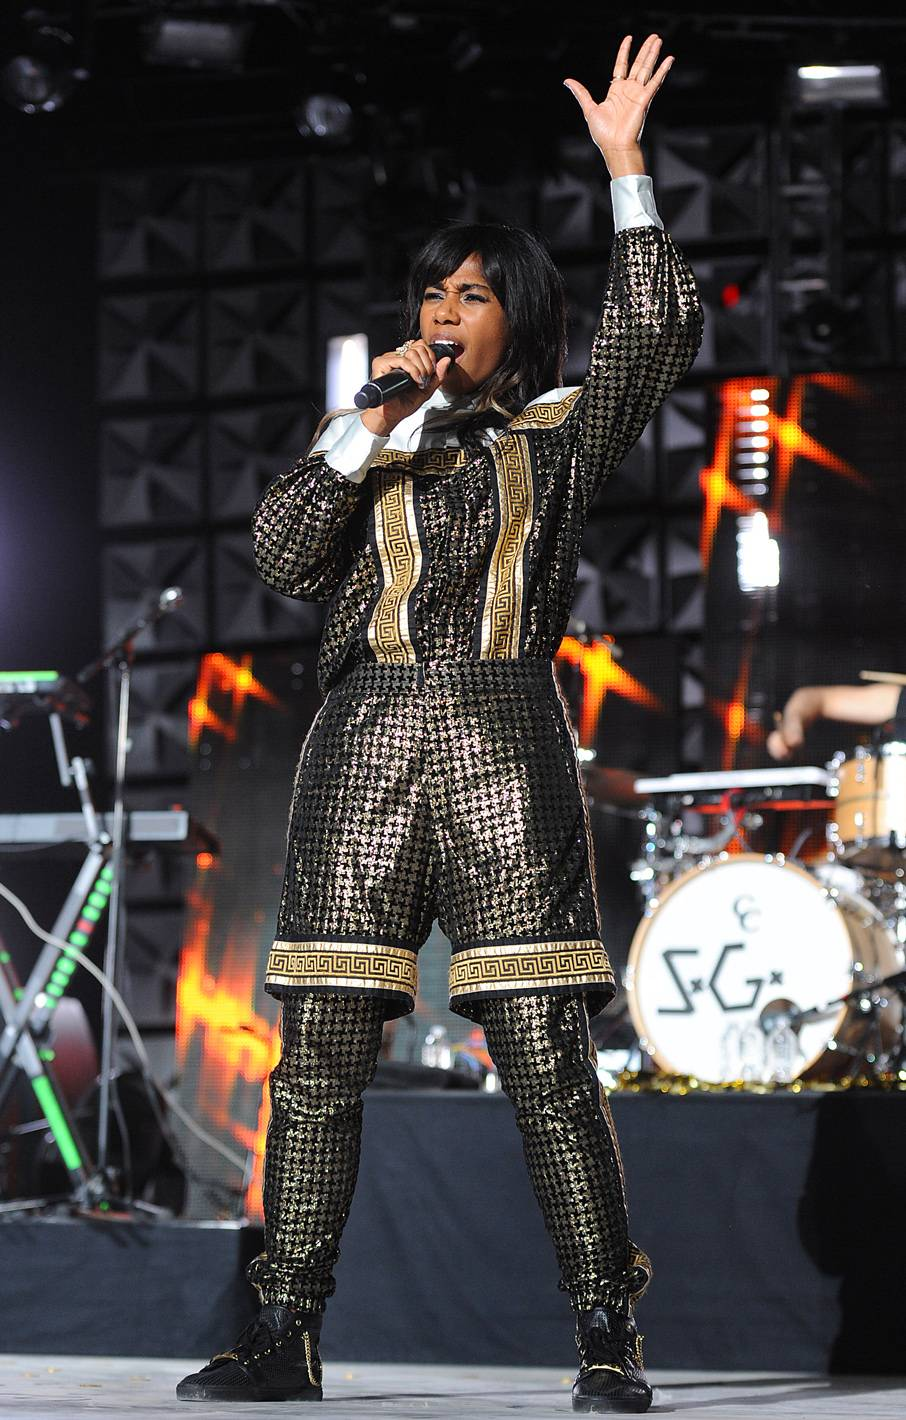 Stylin' and Profilin' - We've never seen an outfit like this, and we're not sure that we'd even wear an outfit like this, but Santigold can make it work... on stage that is.(Photo: Frank Micelotta/PictureGroup)